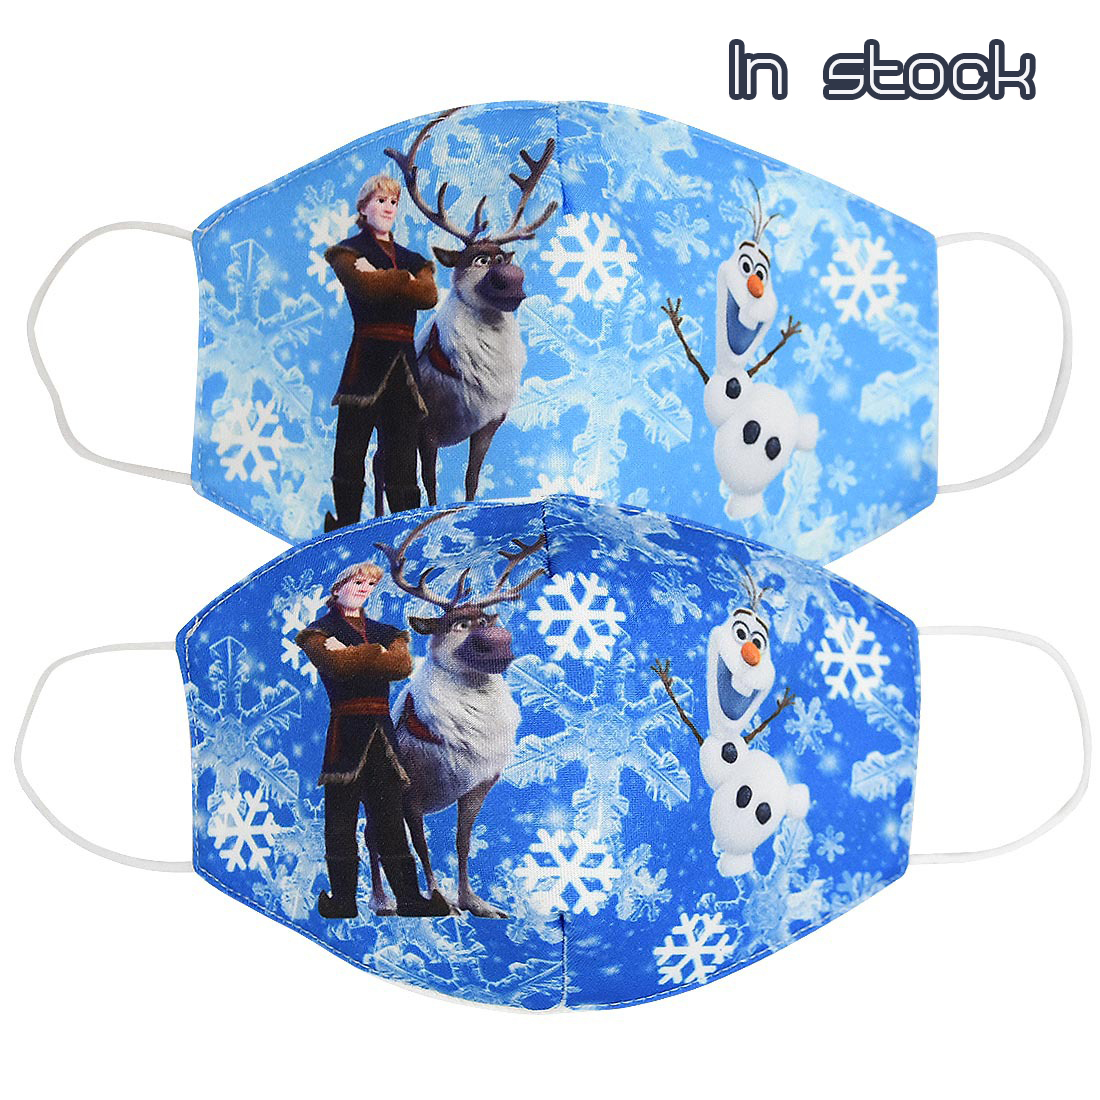 2020 New Kids Snow Queen Protective Mask Cotton Printed Breathable Sun Protection Dustproof Masks For Adult Child